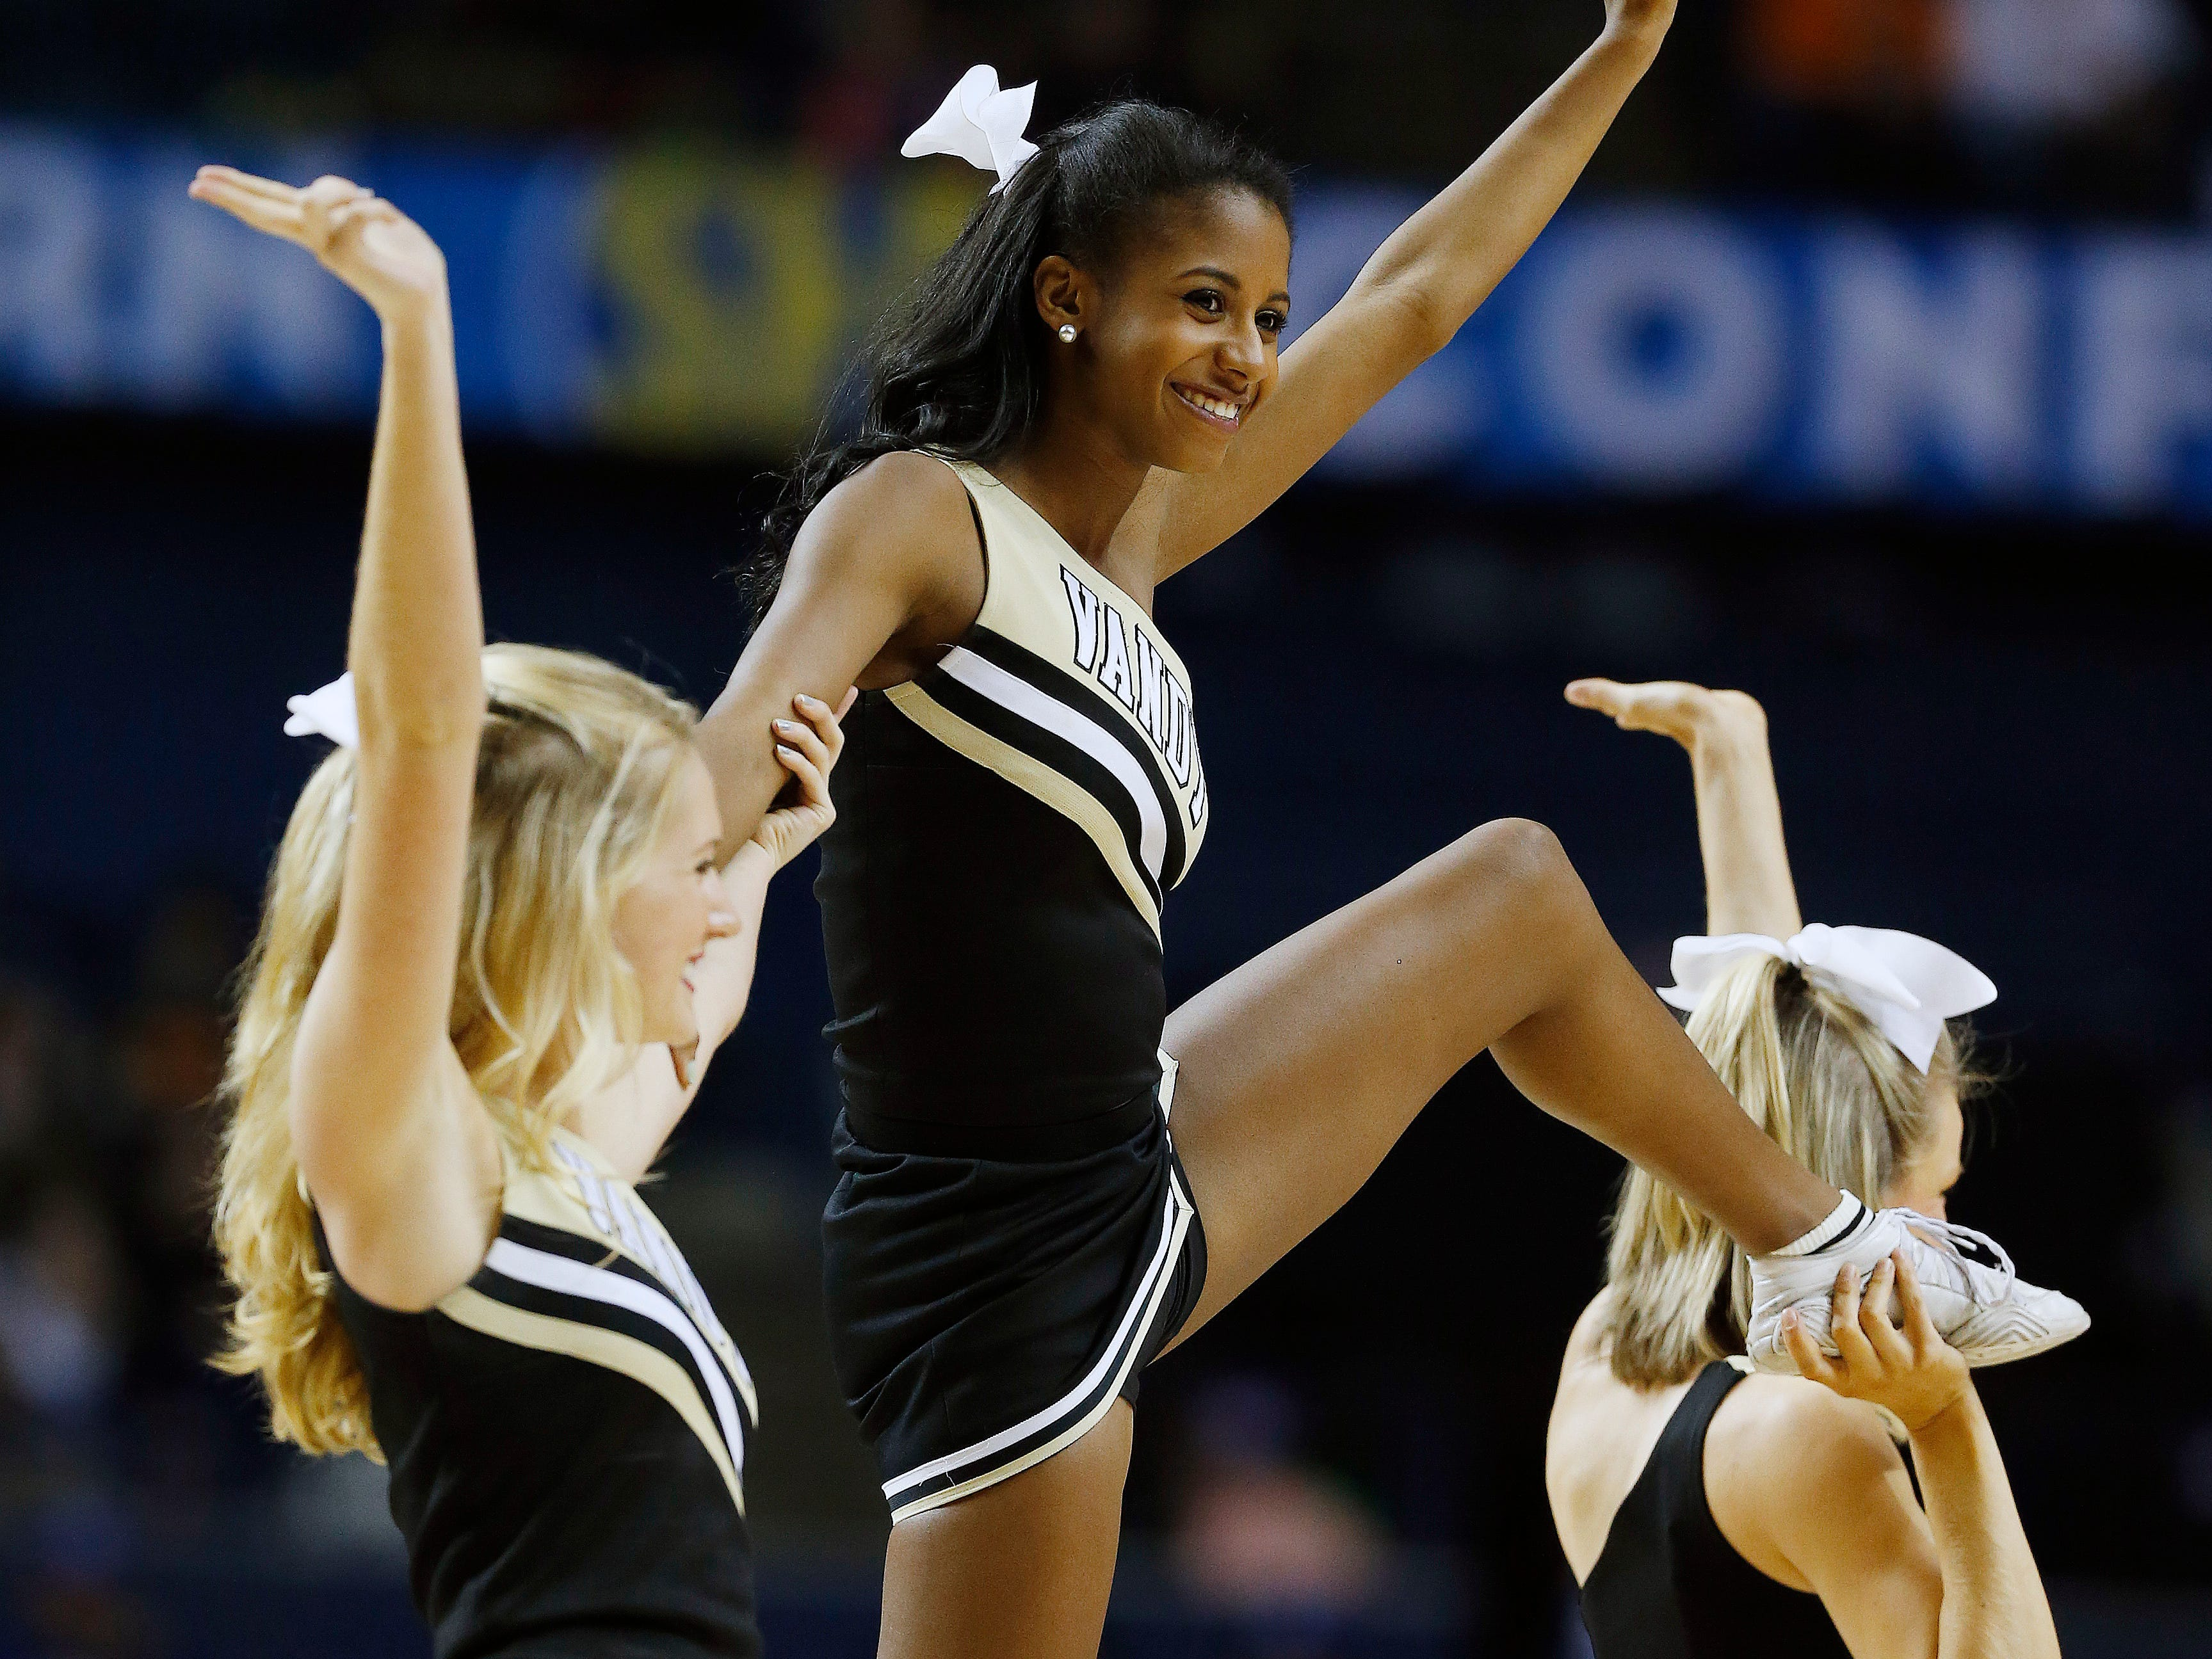 Vanderbilt cheerleaders perform during the first half of an NCAA college basketball game in the second round of the Southeastern Conference tournament between Tennessee and anderbilt, Thursday, March 12, 2015, in Nashville, Tenn. (AP Photo/Steve Helber)